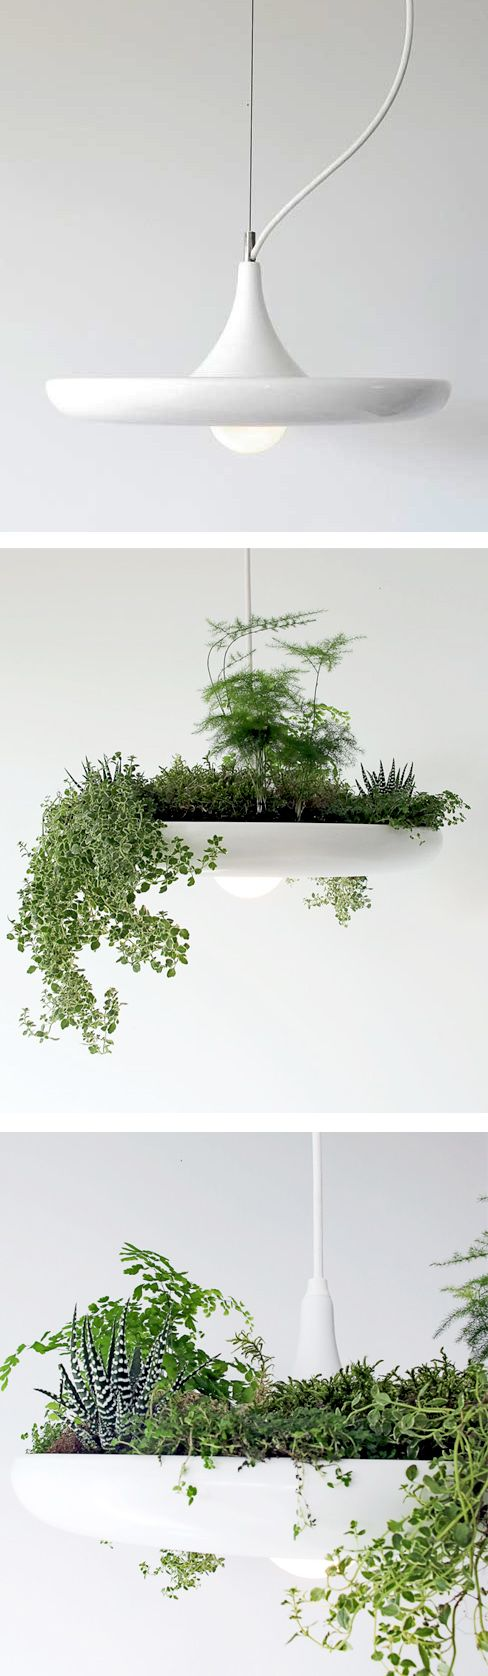 Pendant Lamp that can be used to grow herbs or succulents |